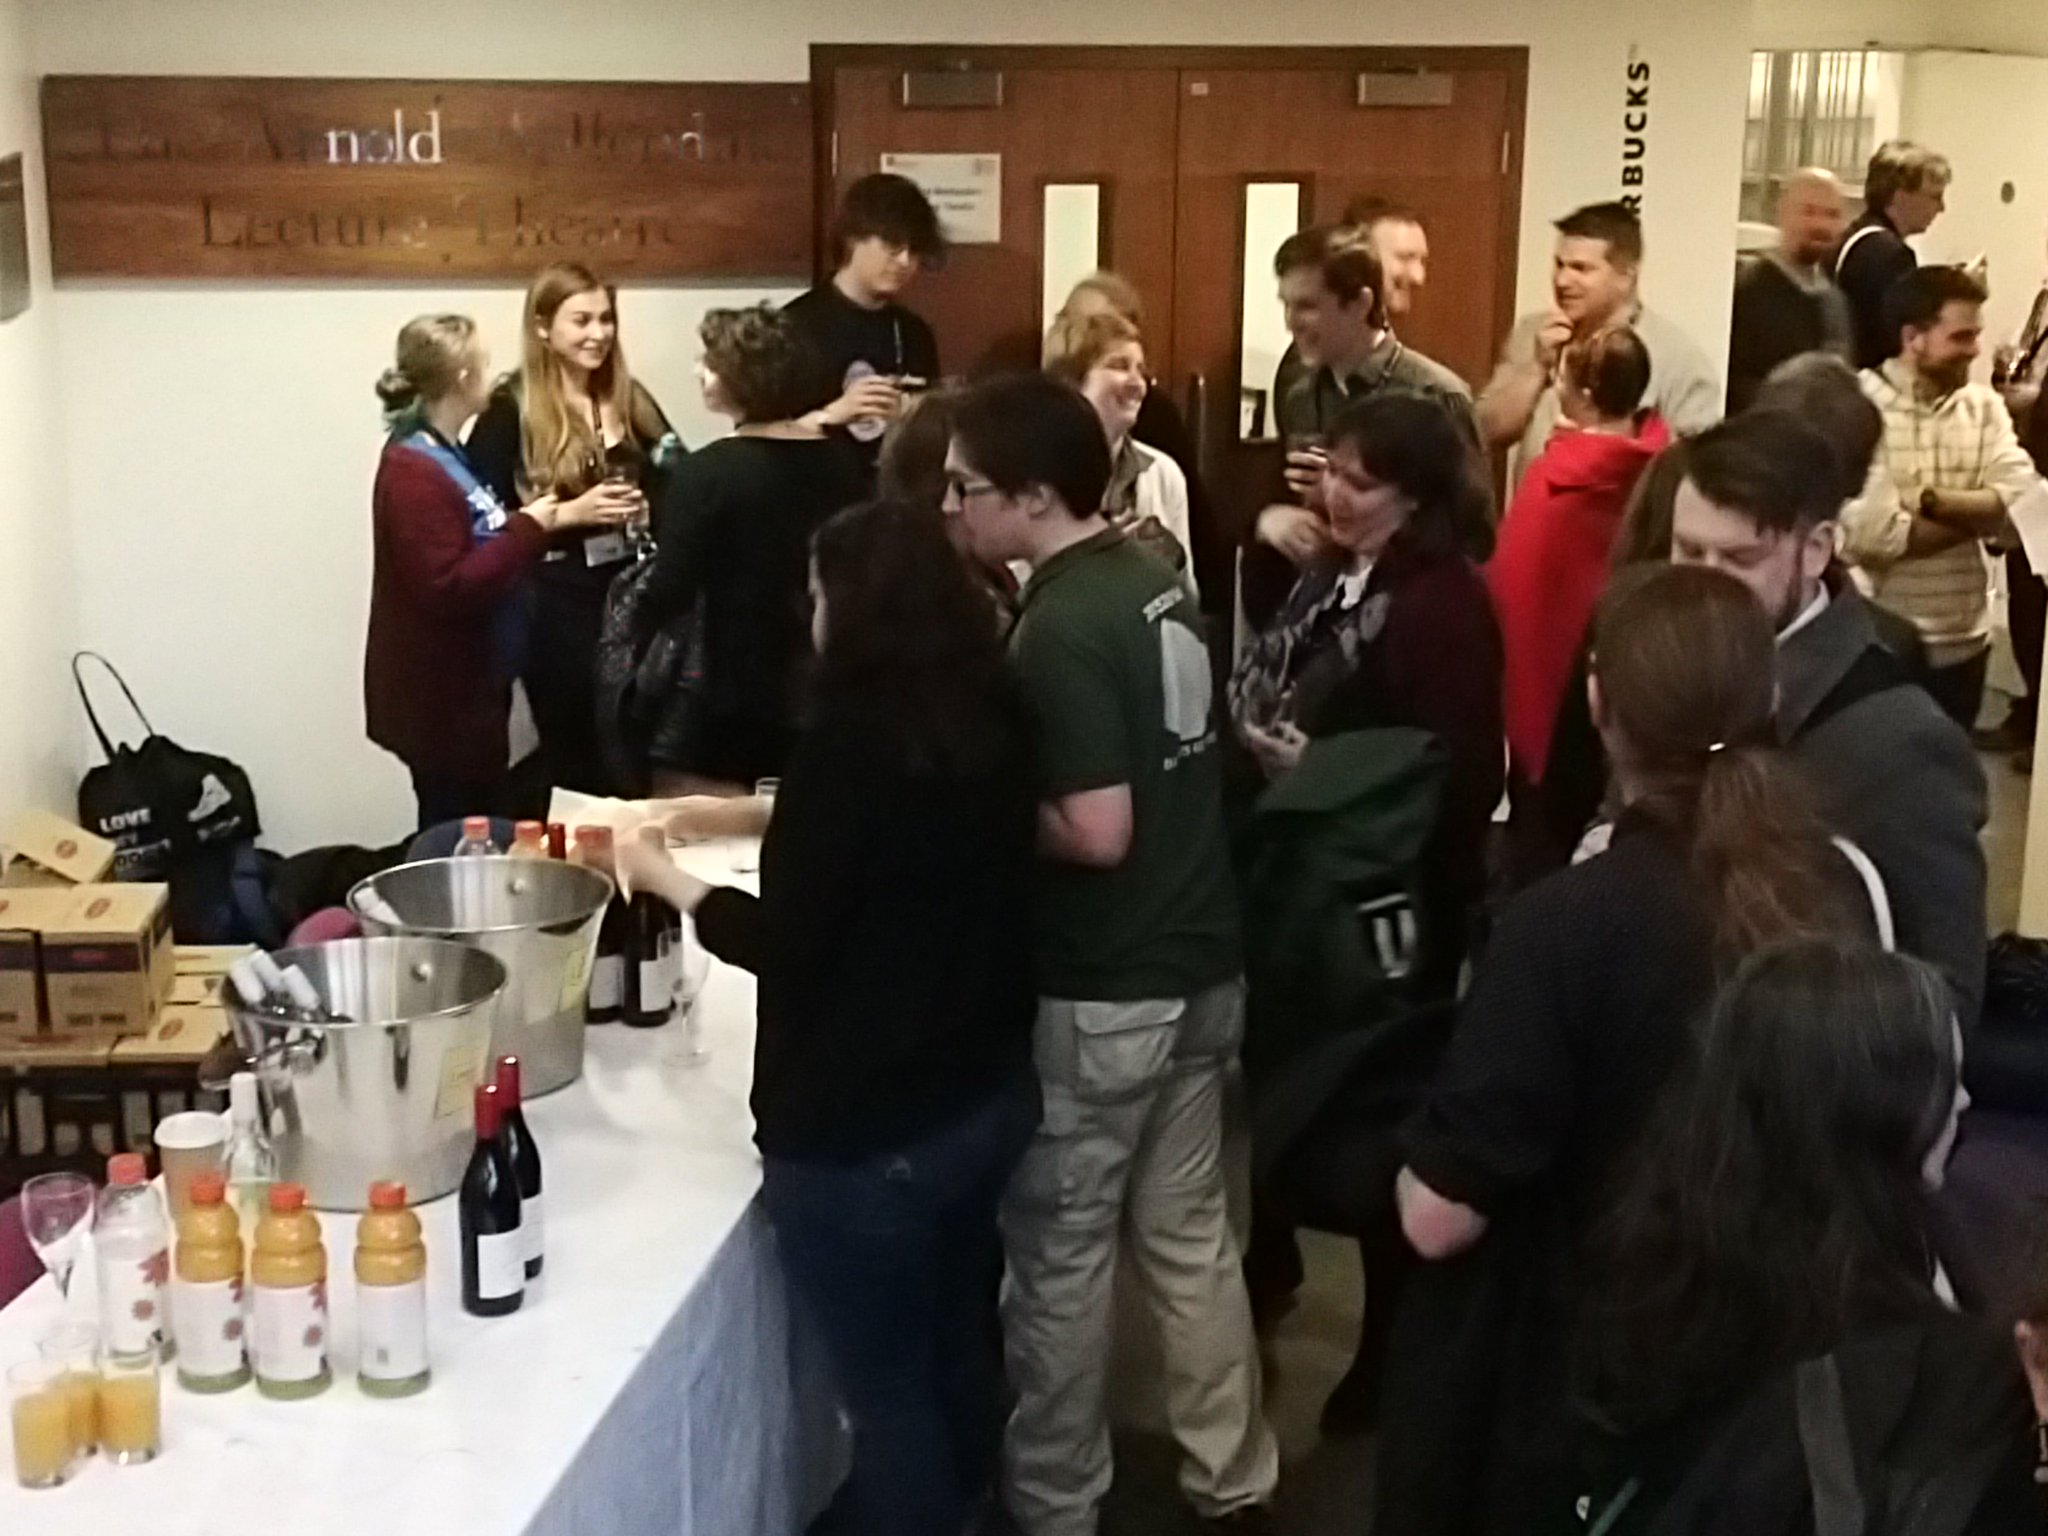 Enjoying wine reception at #TRACDurham after Hella Eckardt's great keynote paper! https://t.co/qRFx5Cp0zs